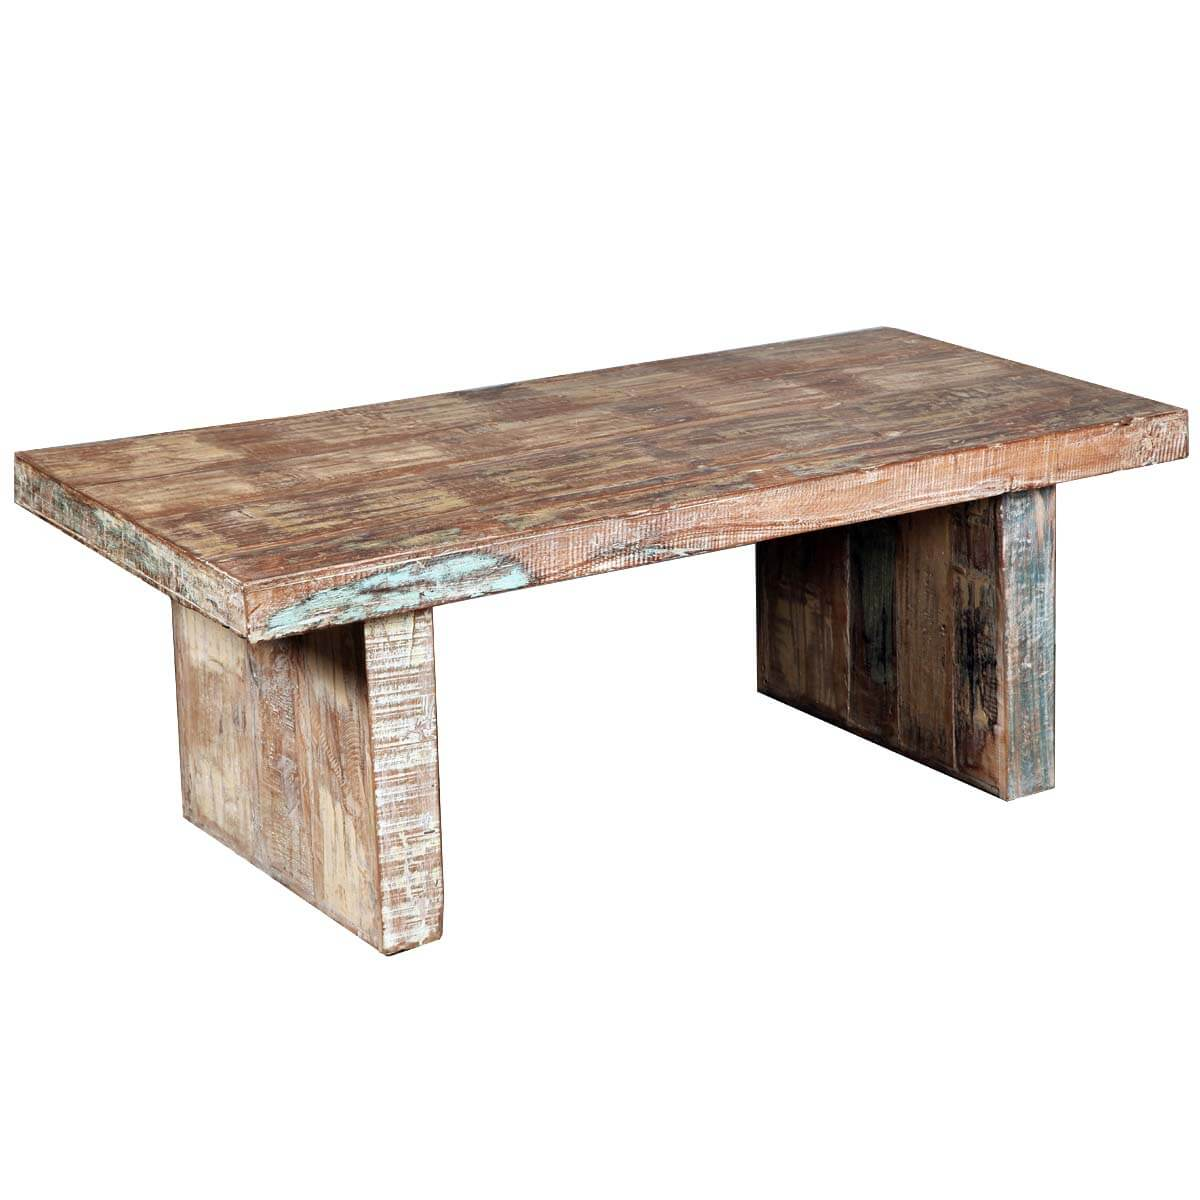 Rustic mission reclaimed wood distressed coffee table for Wooden coffee tables images